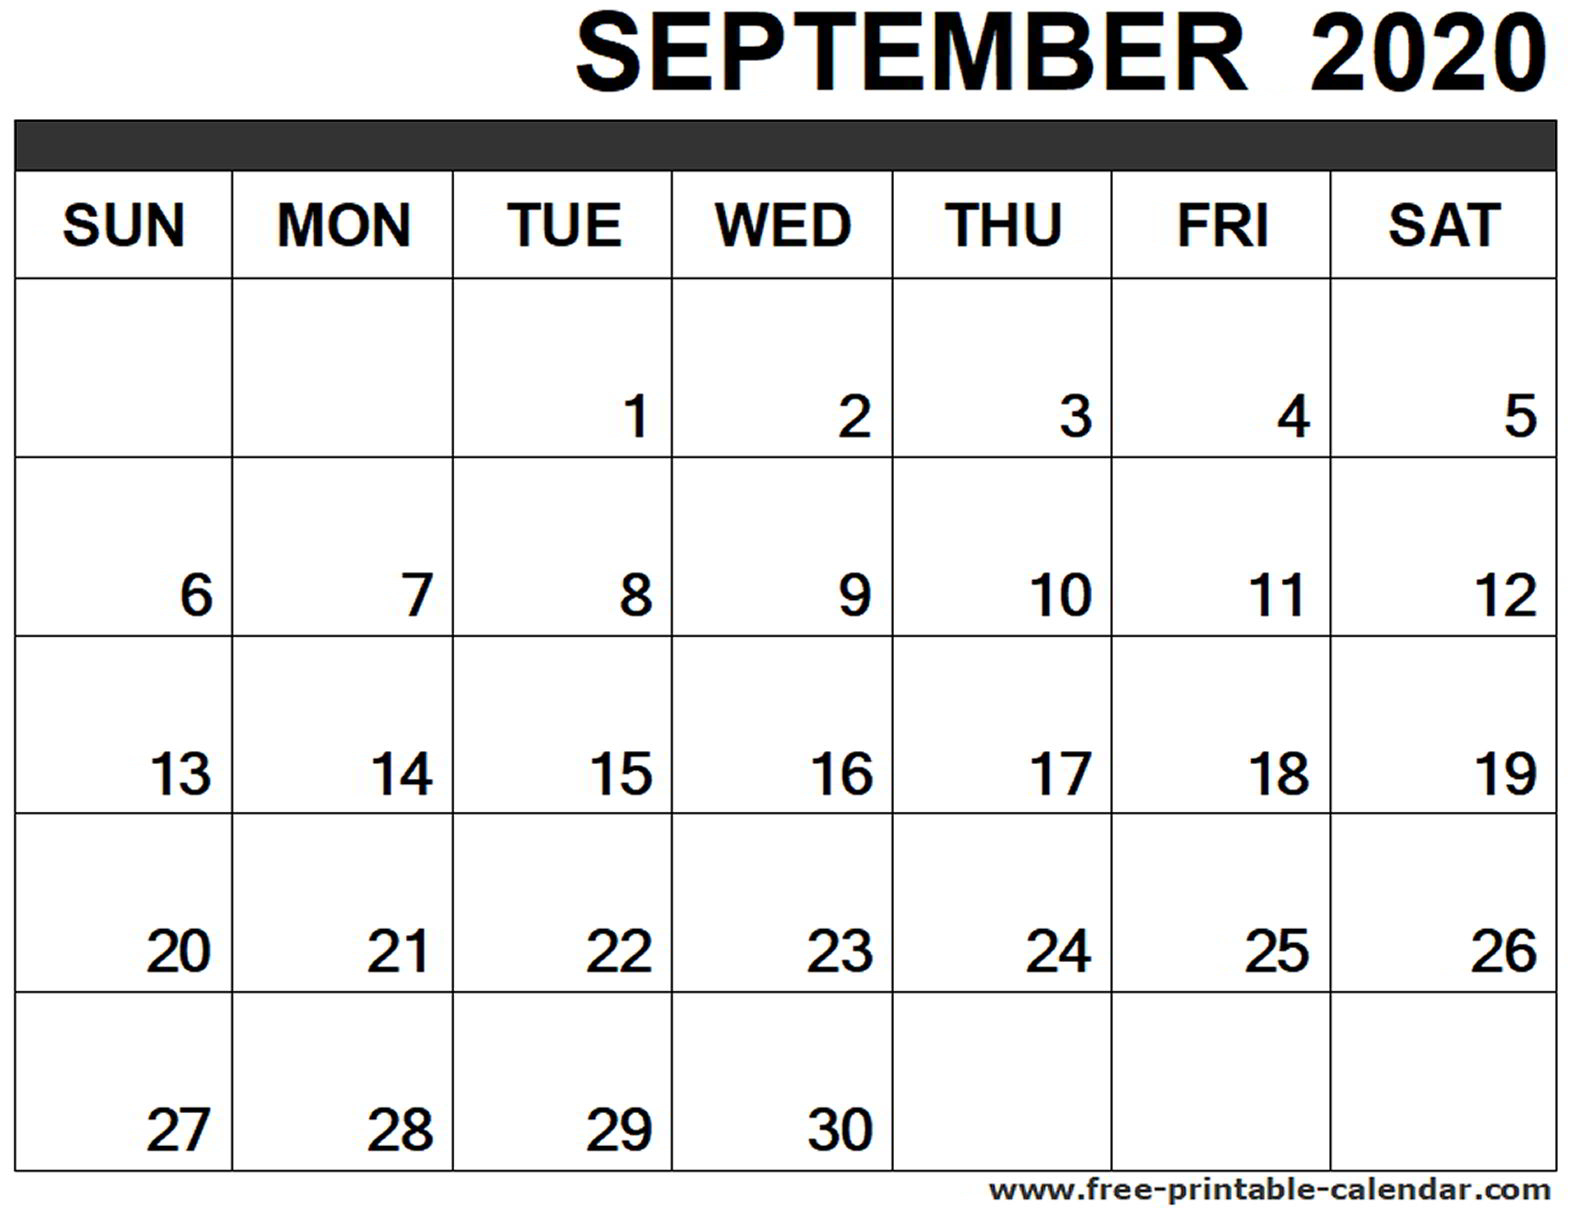 September 2020 Calendar Printable - Free-Printable-Calendar with Free Printable Monthly Calendar September 2020